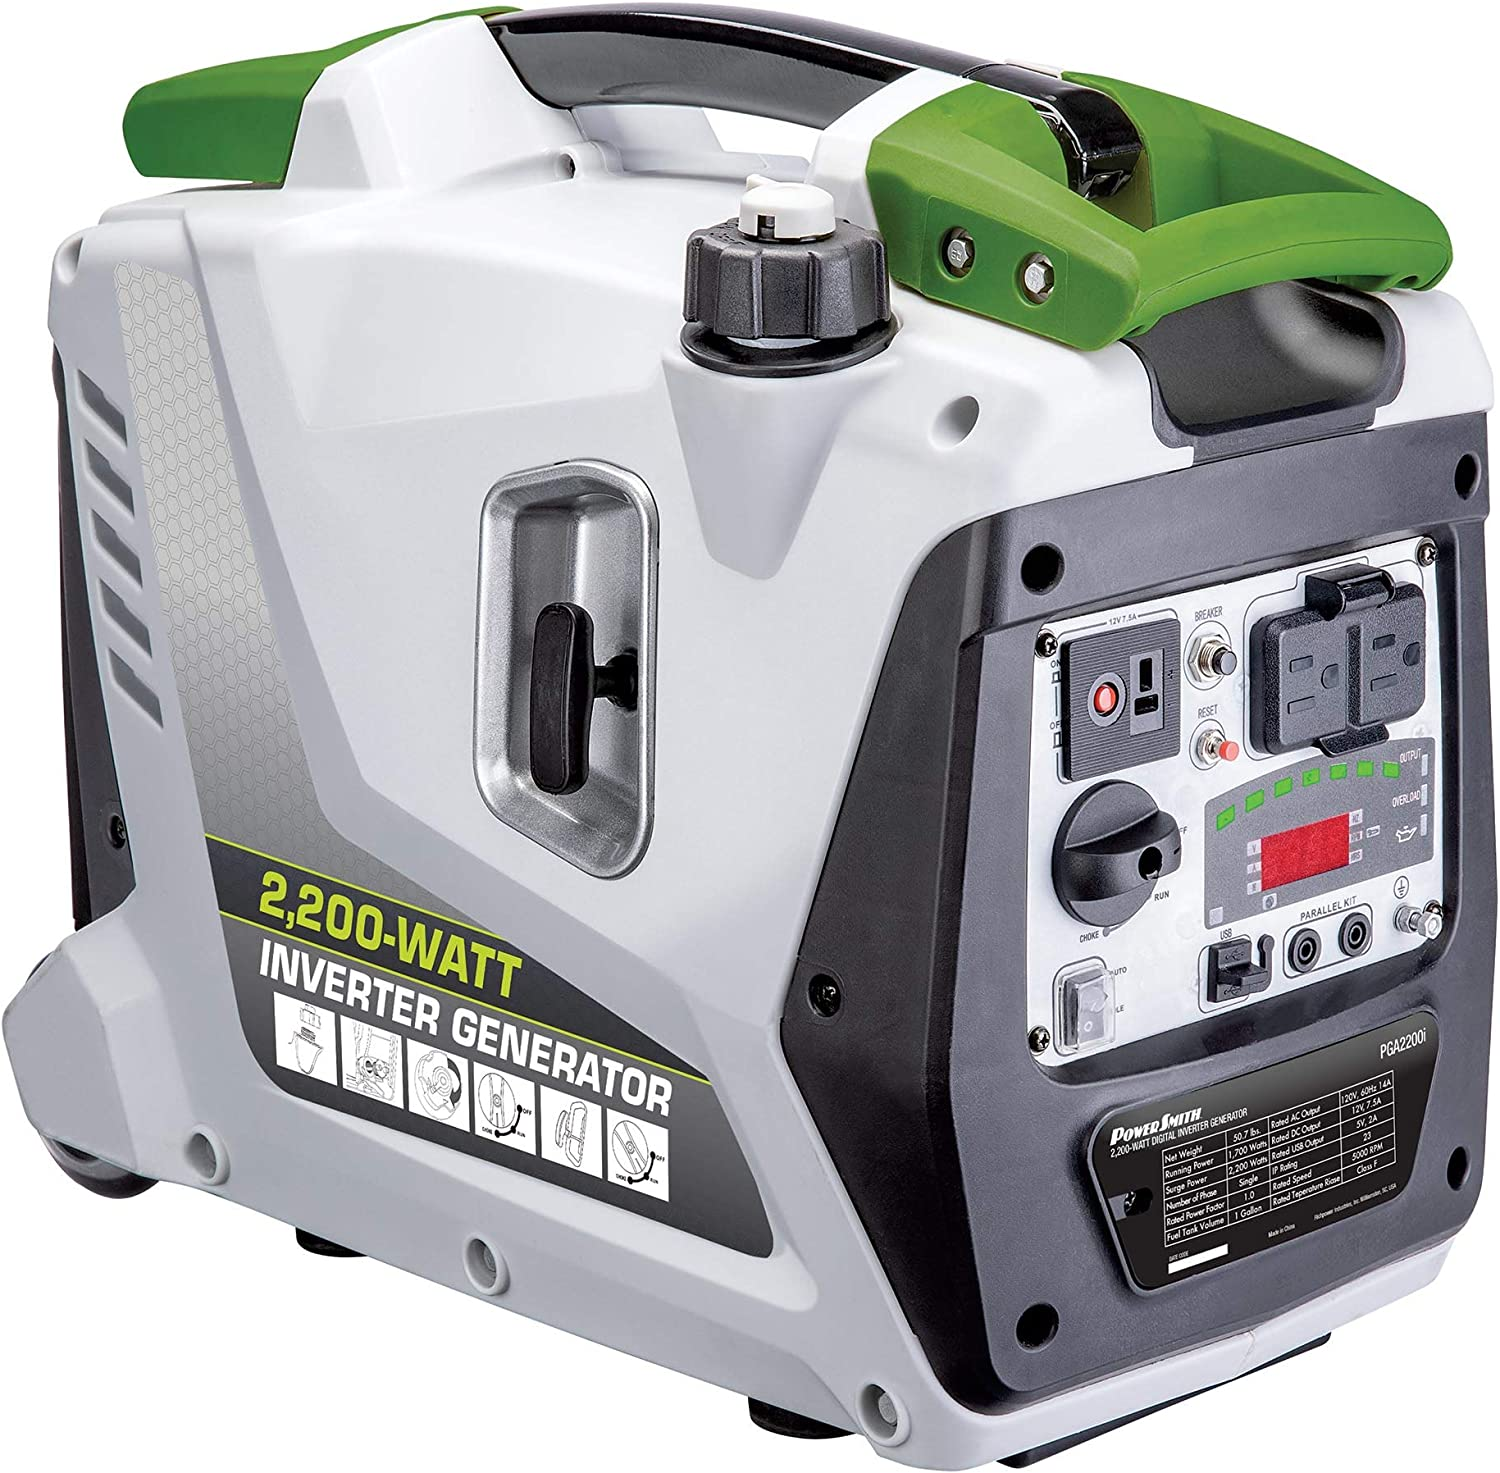 Top 10 Best Generators For Home Use Review (2021) 6